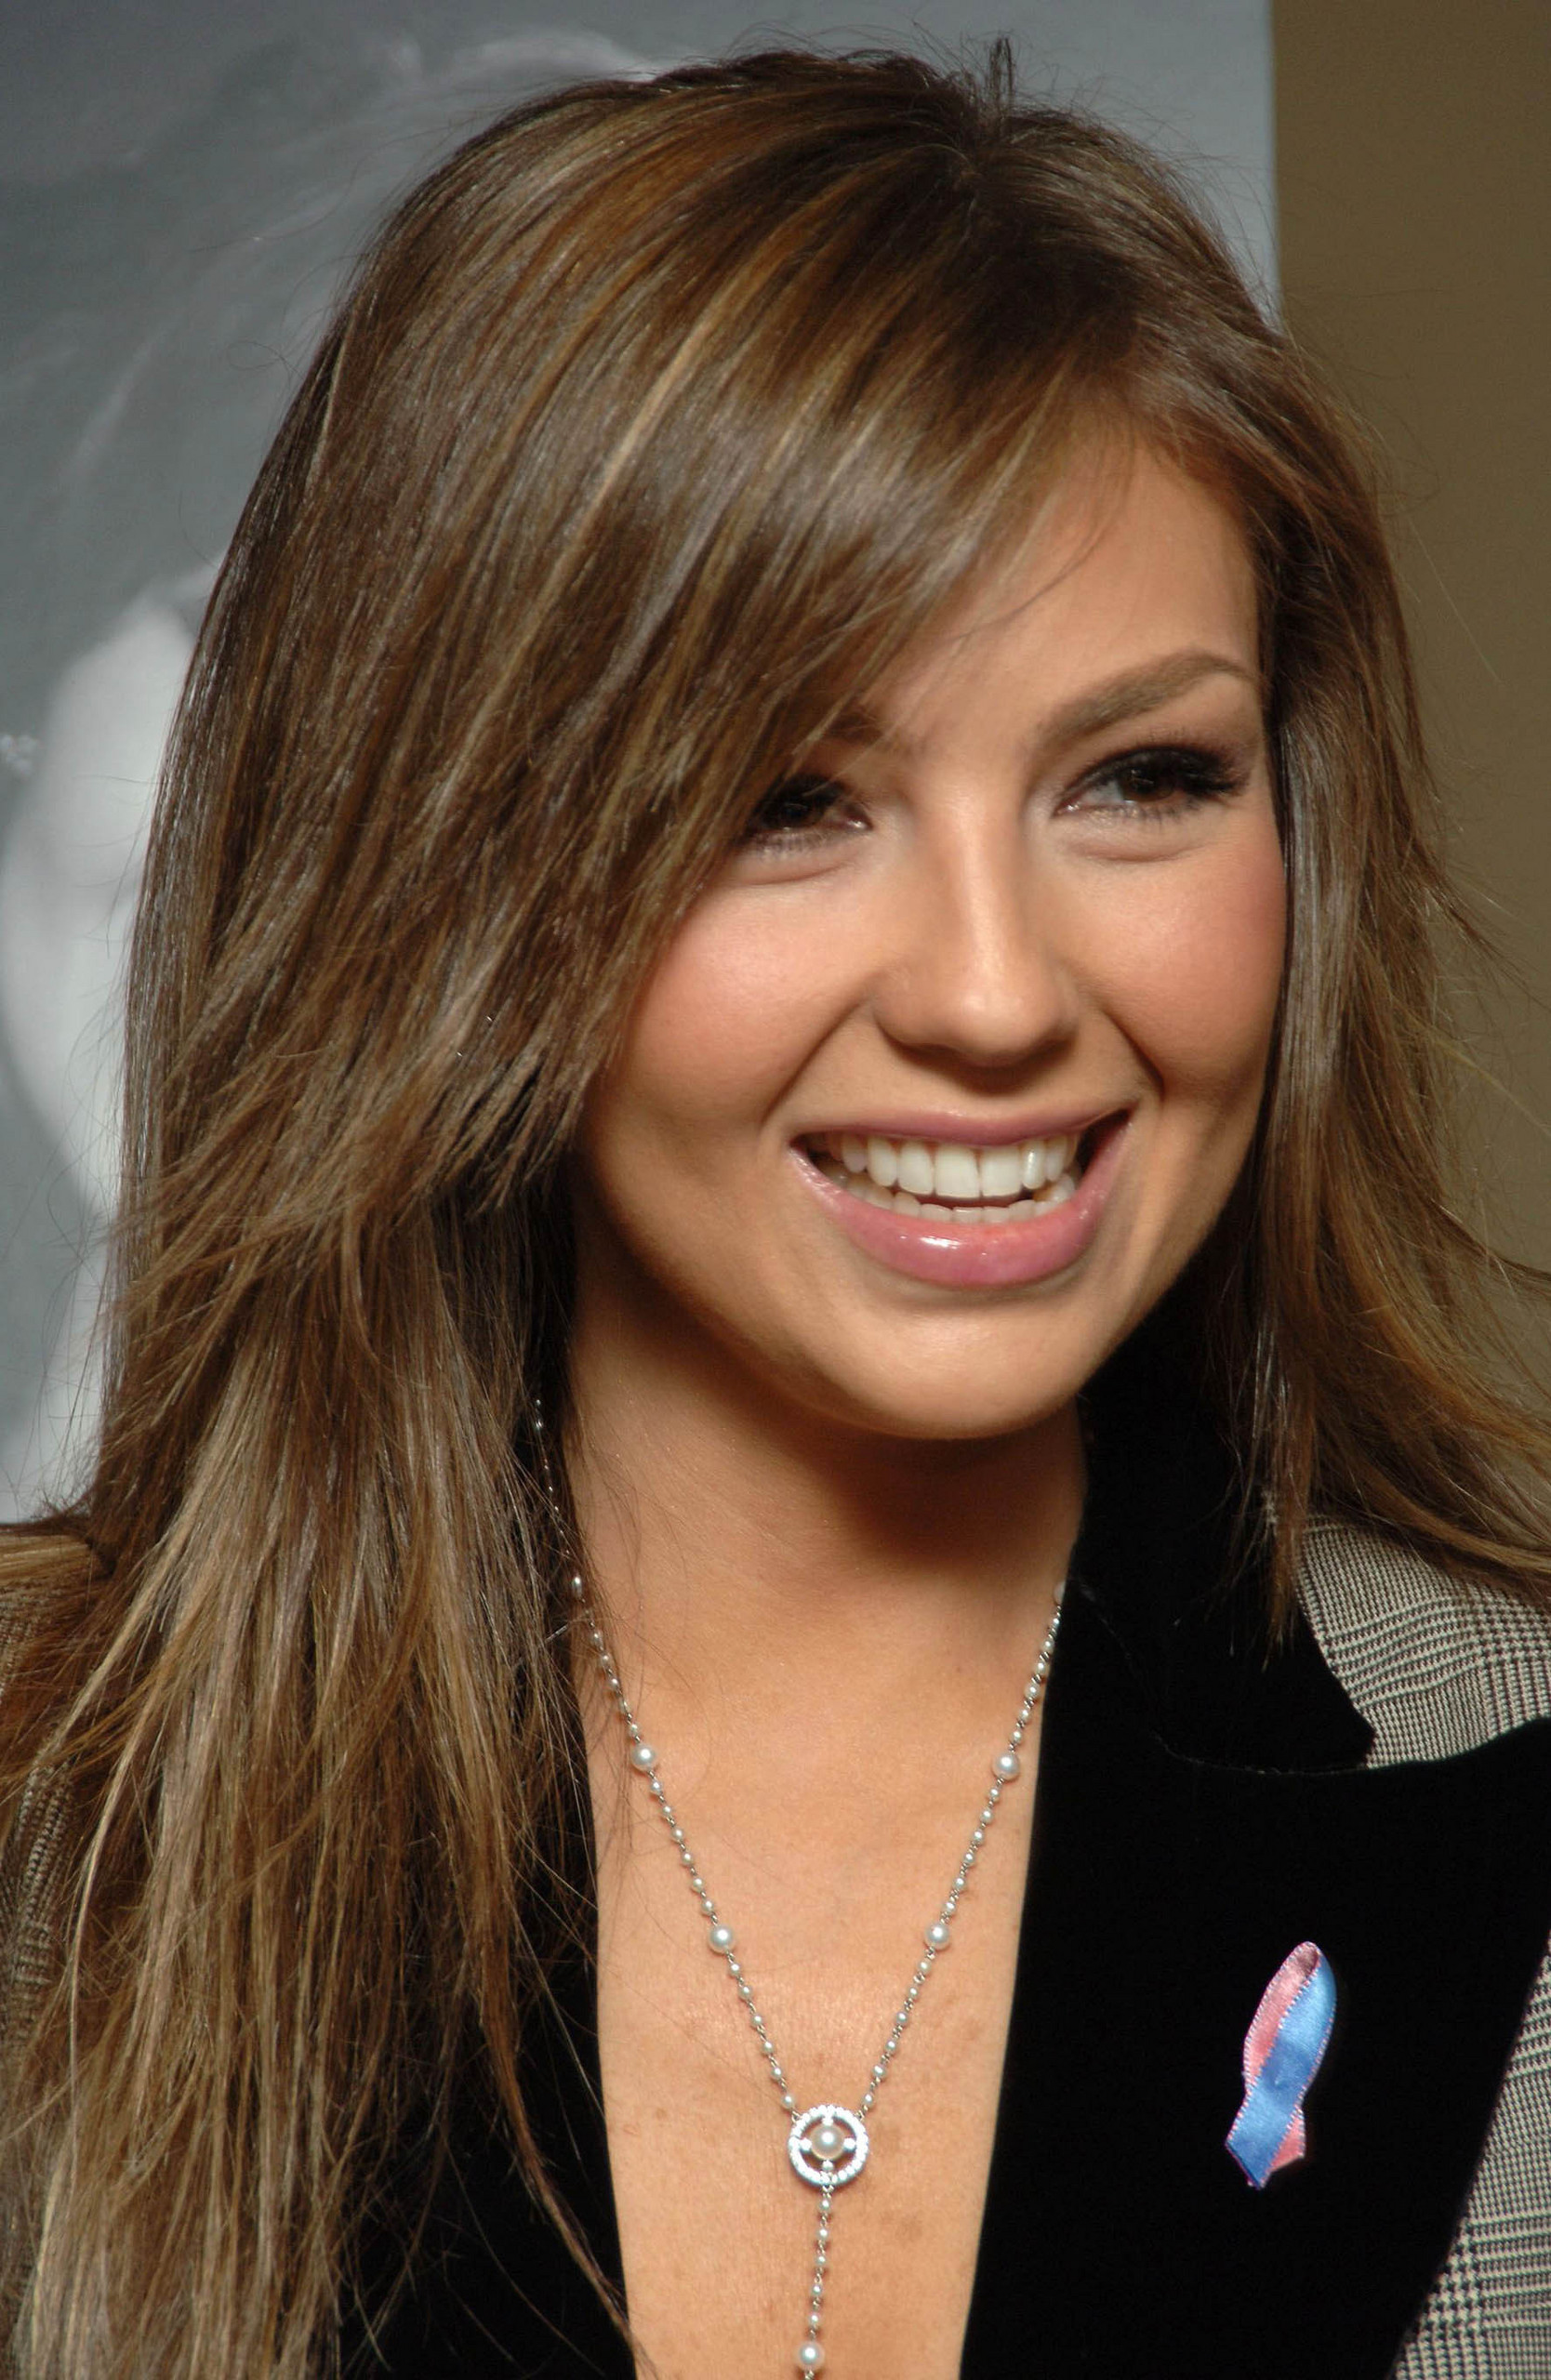 http://images2.fanpop.com/images/photos/6700000/Thalia-thalia-6708821-1668-2560.jpg